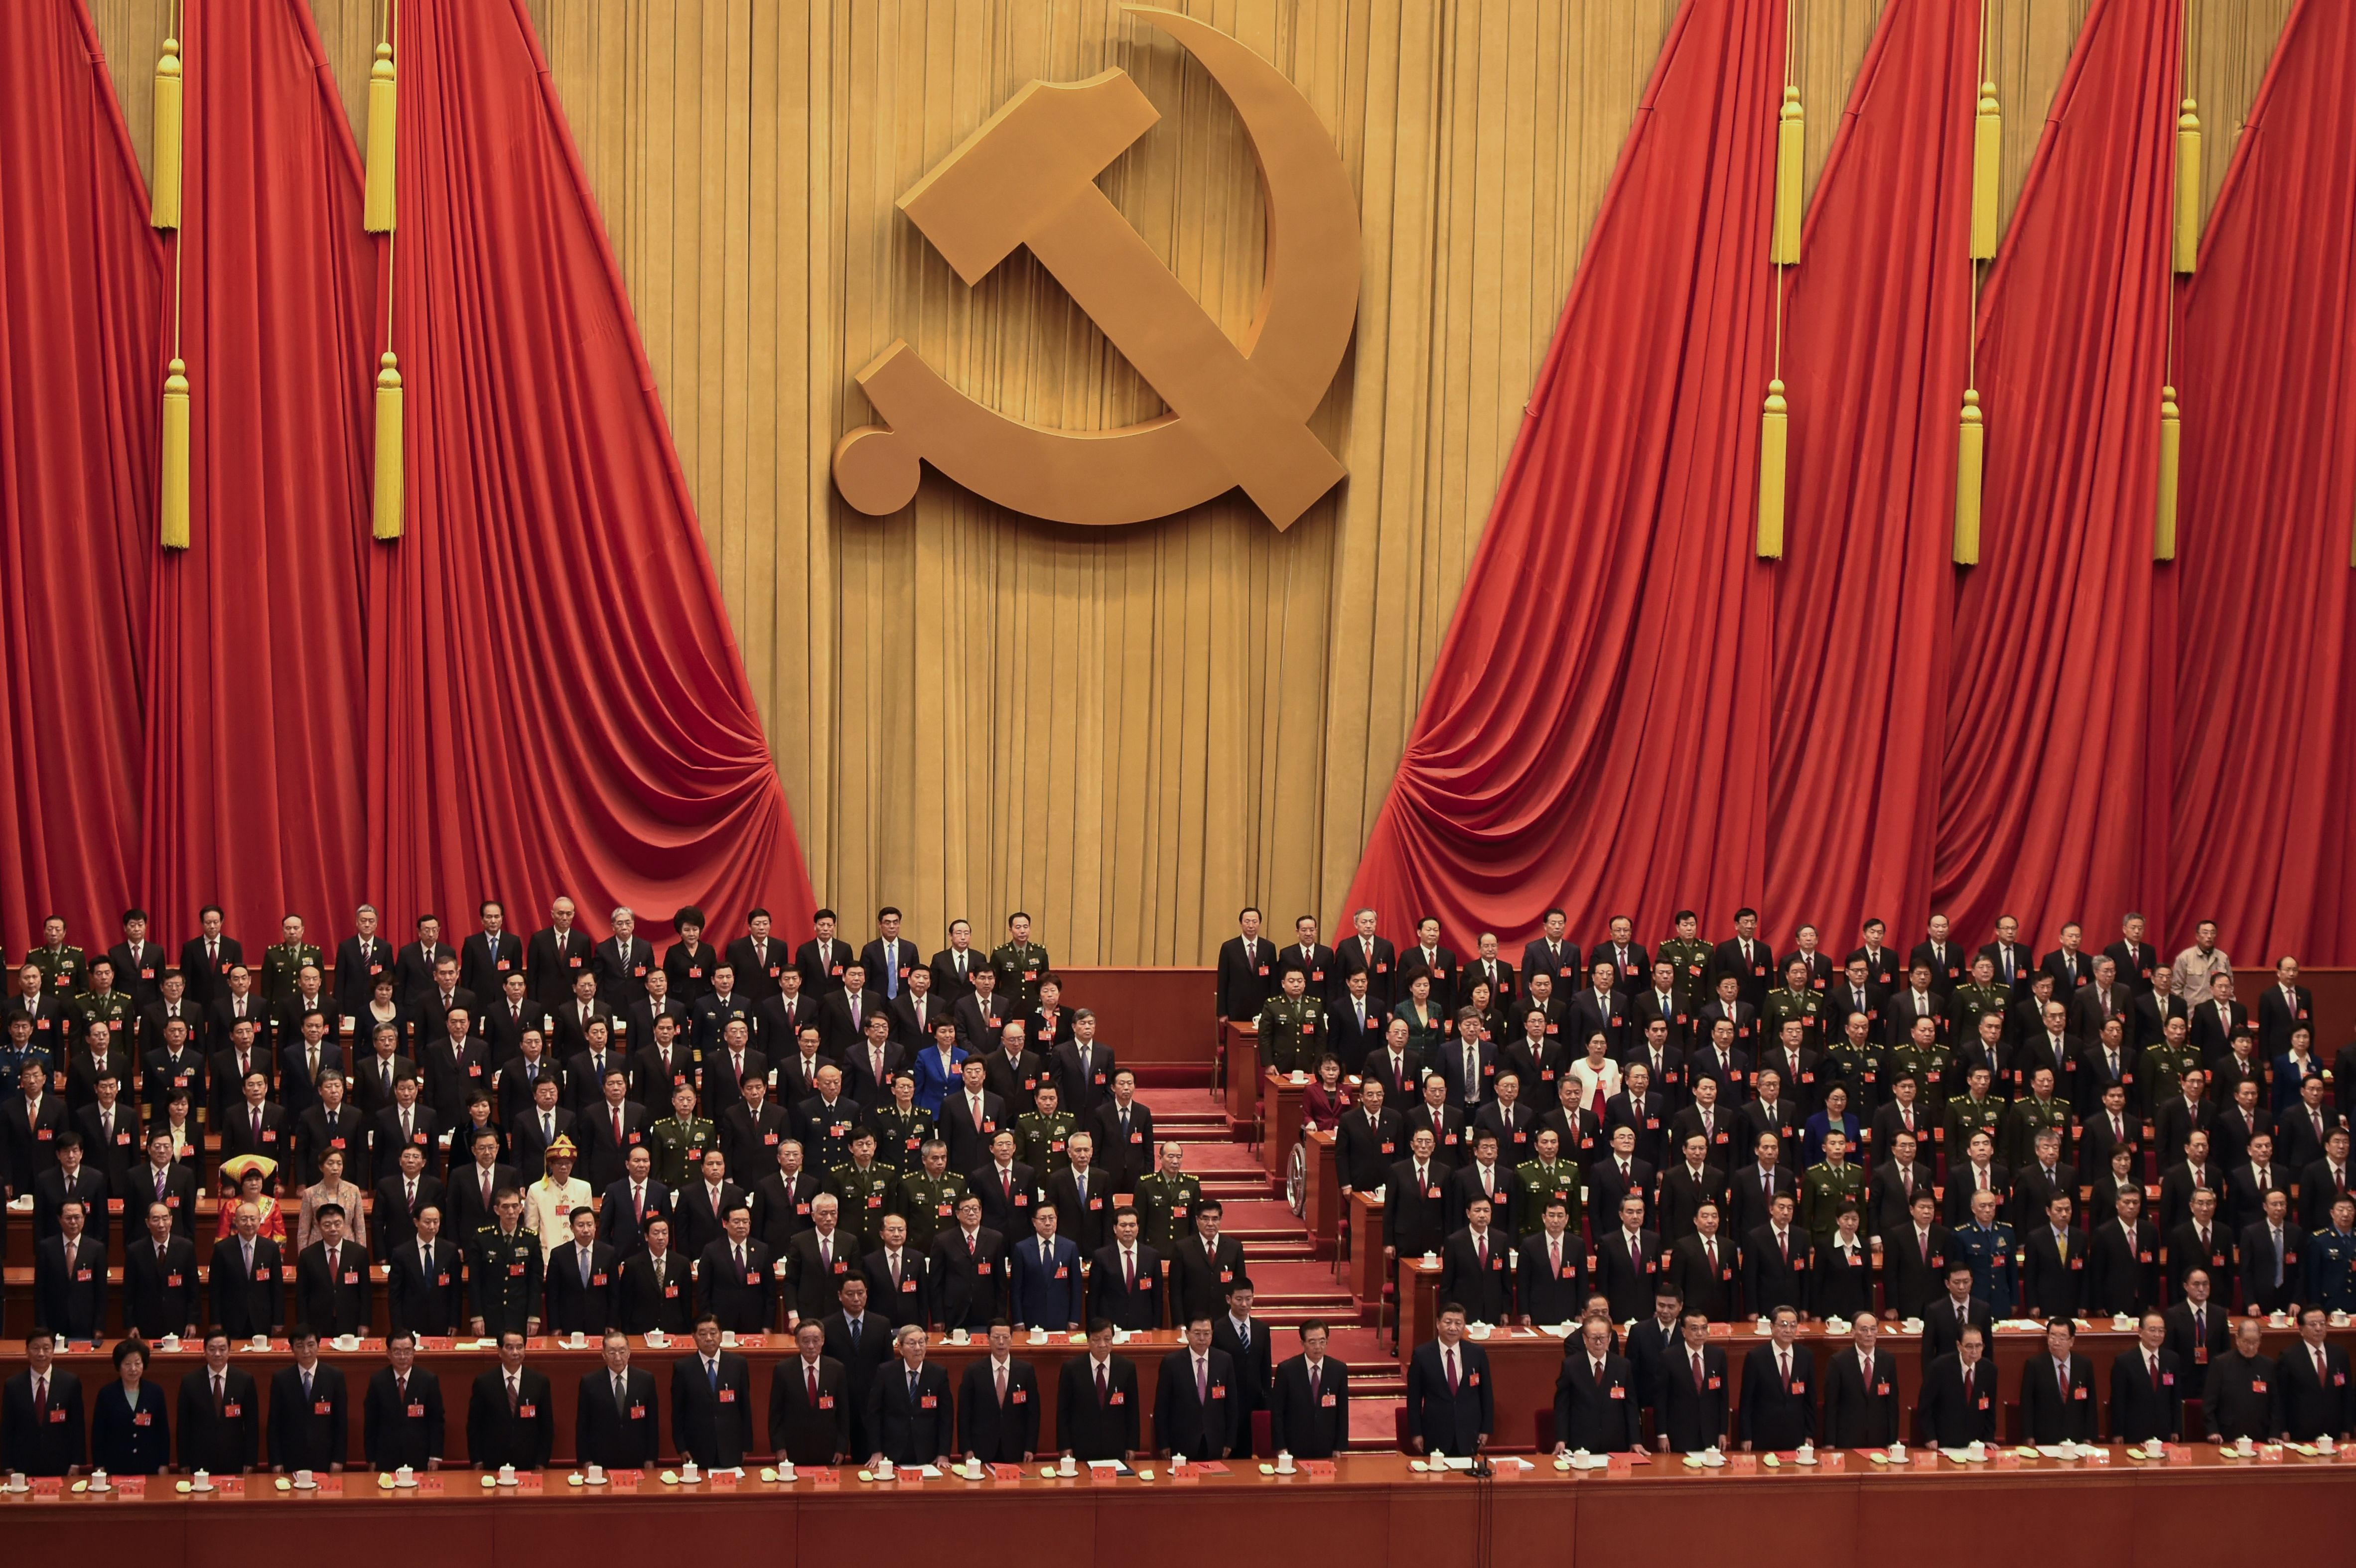 Delegates listen to the Internationale at the end of the closing session of the 19th Communist Party Congress at the Great Hall of the People in Beijing on October 24, 2017. (WANG ZHAO/AFP via Getty Images)